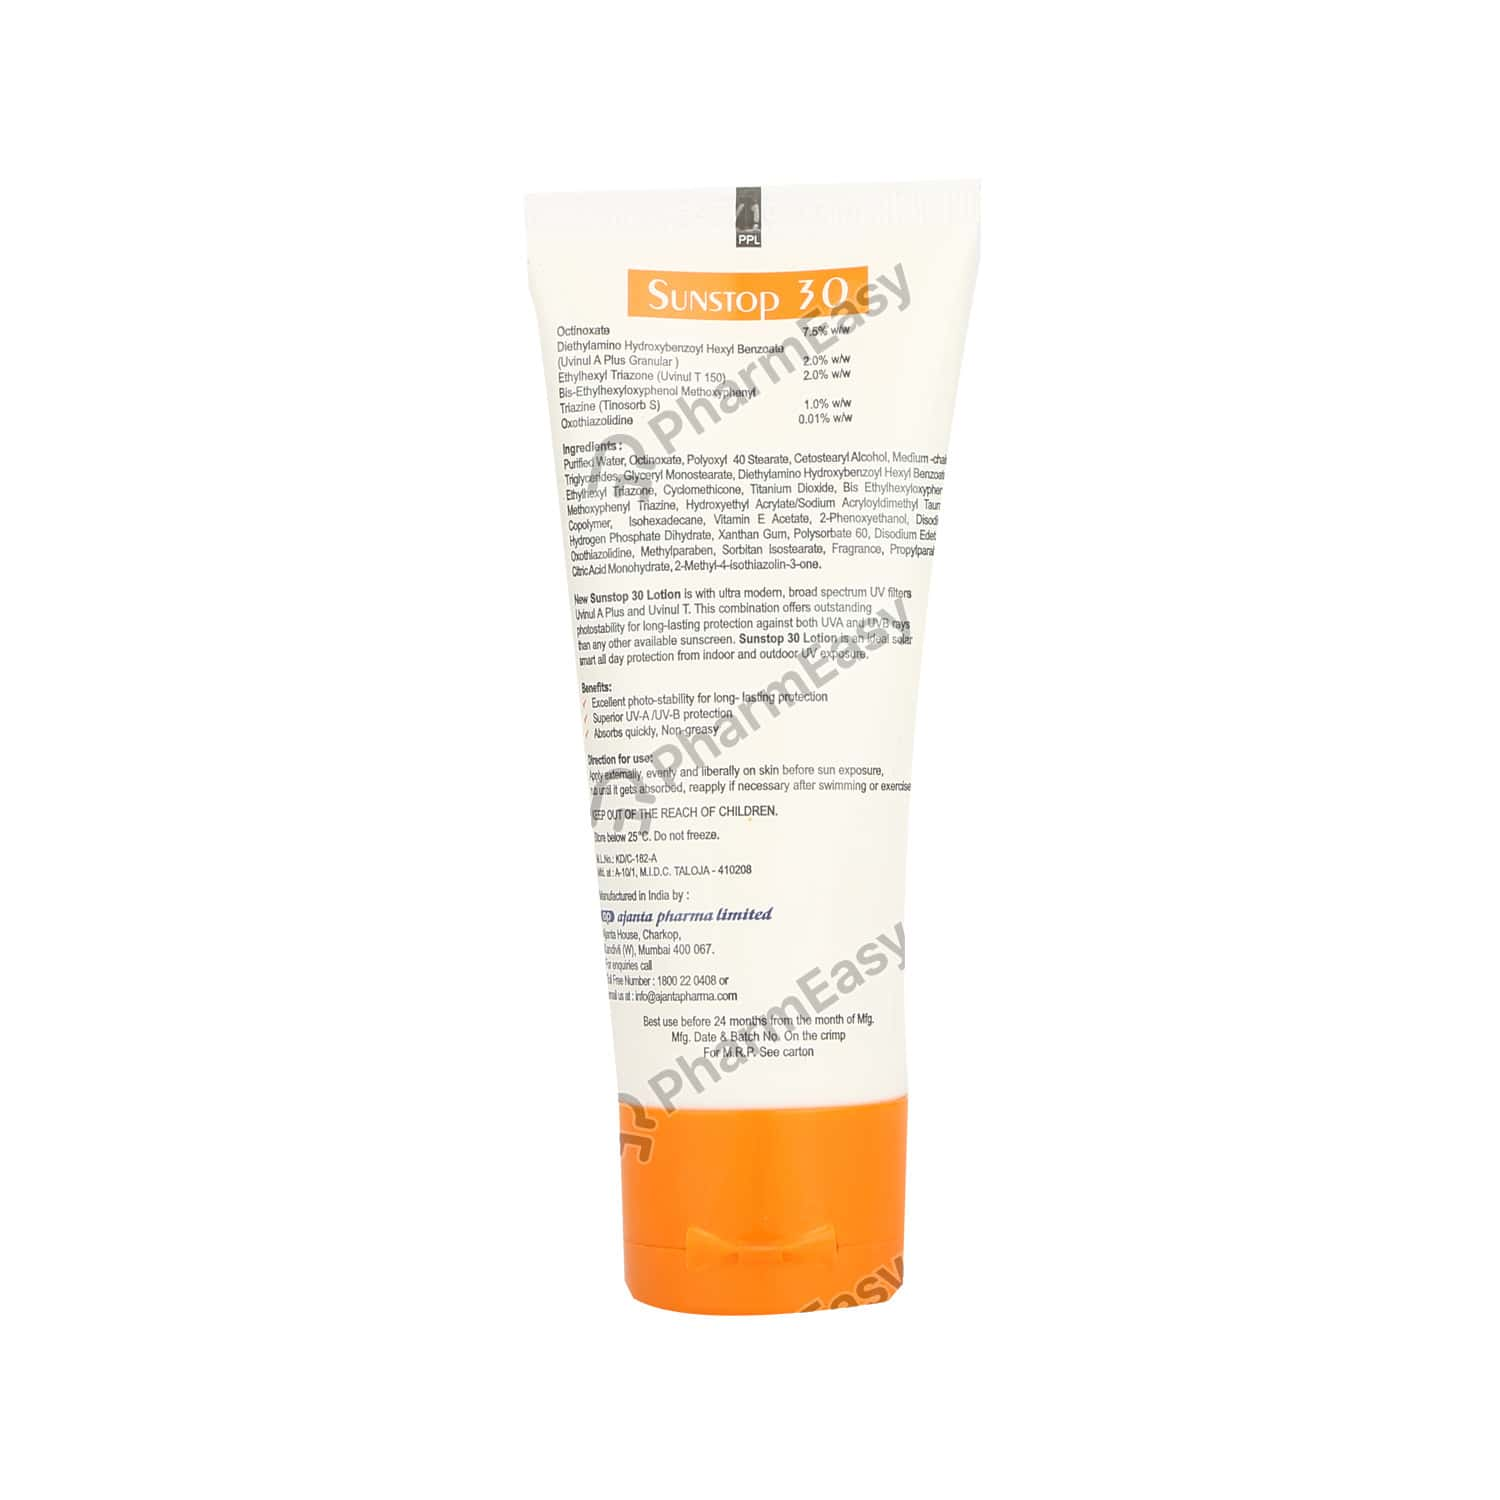 Sunstop 30 Sunscreen Lotion 60gm